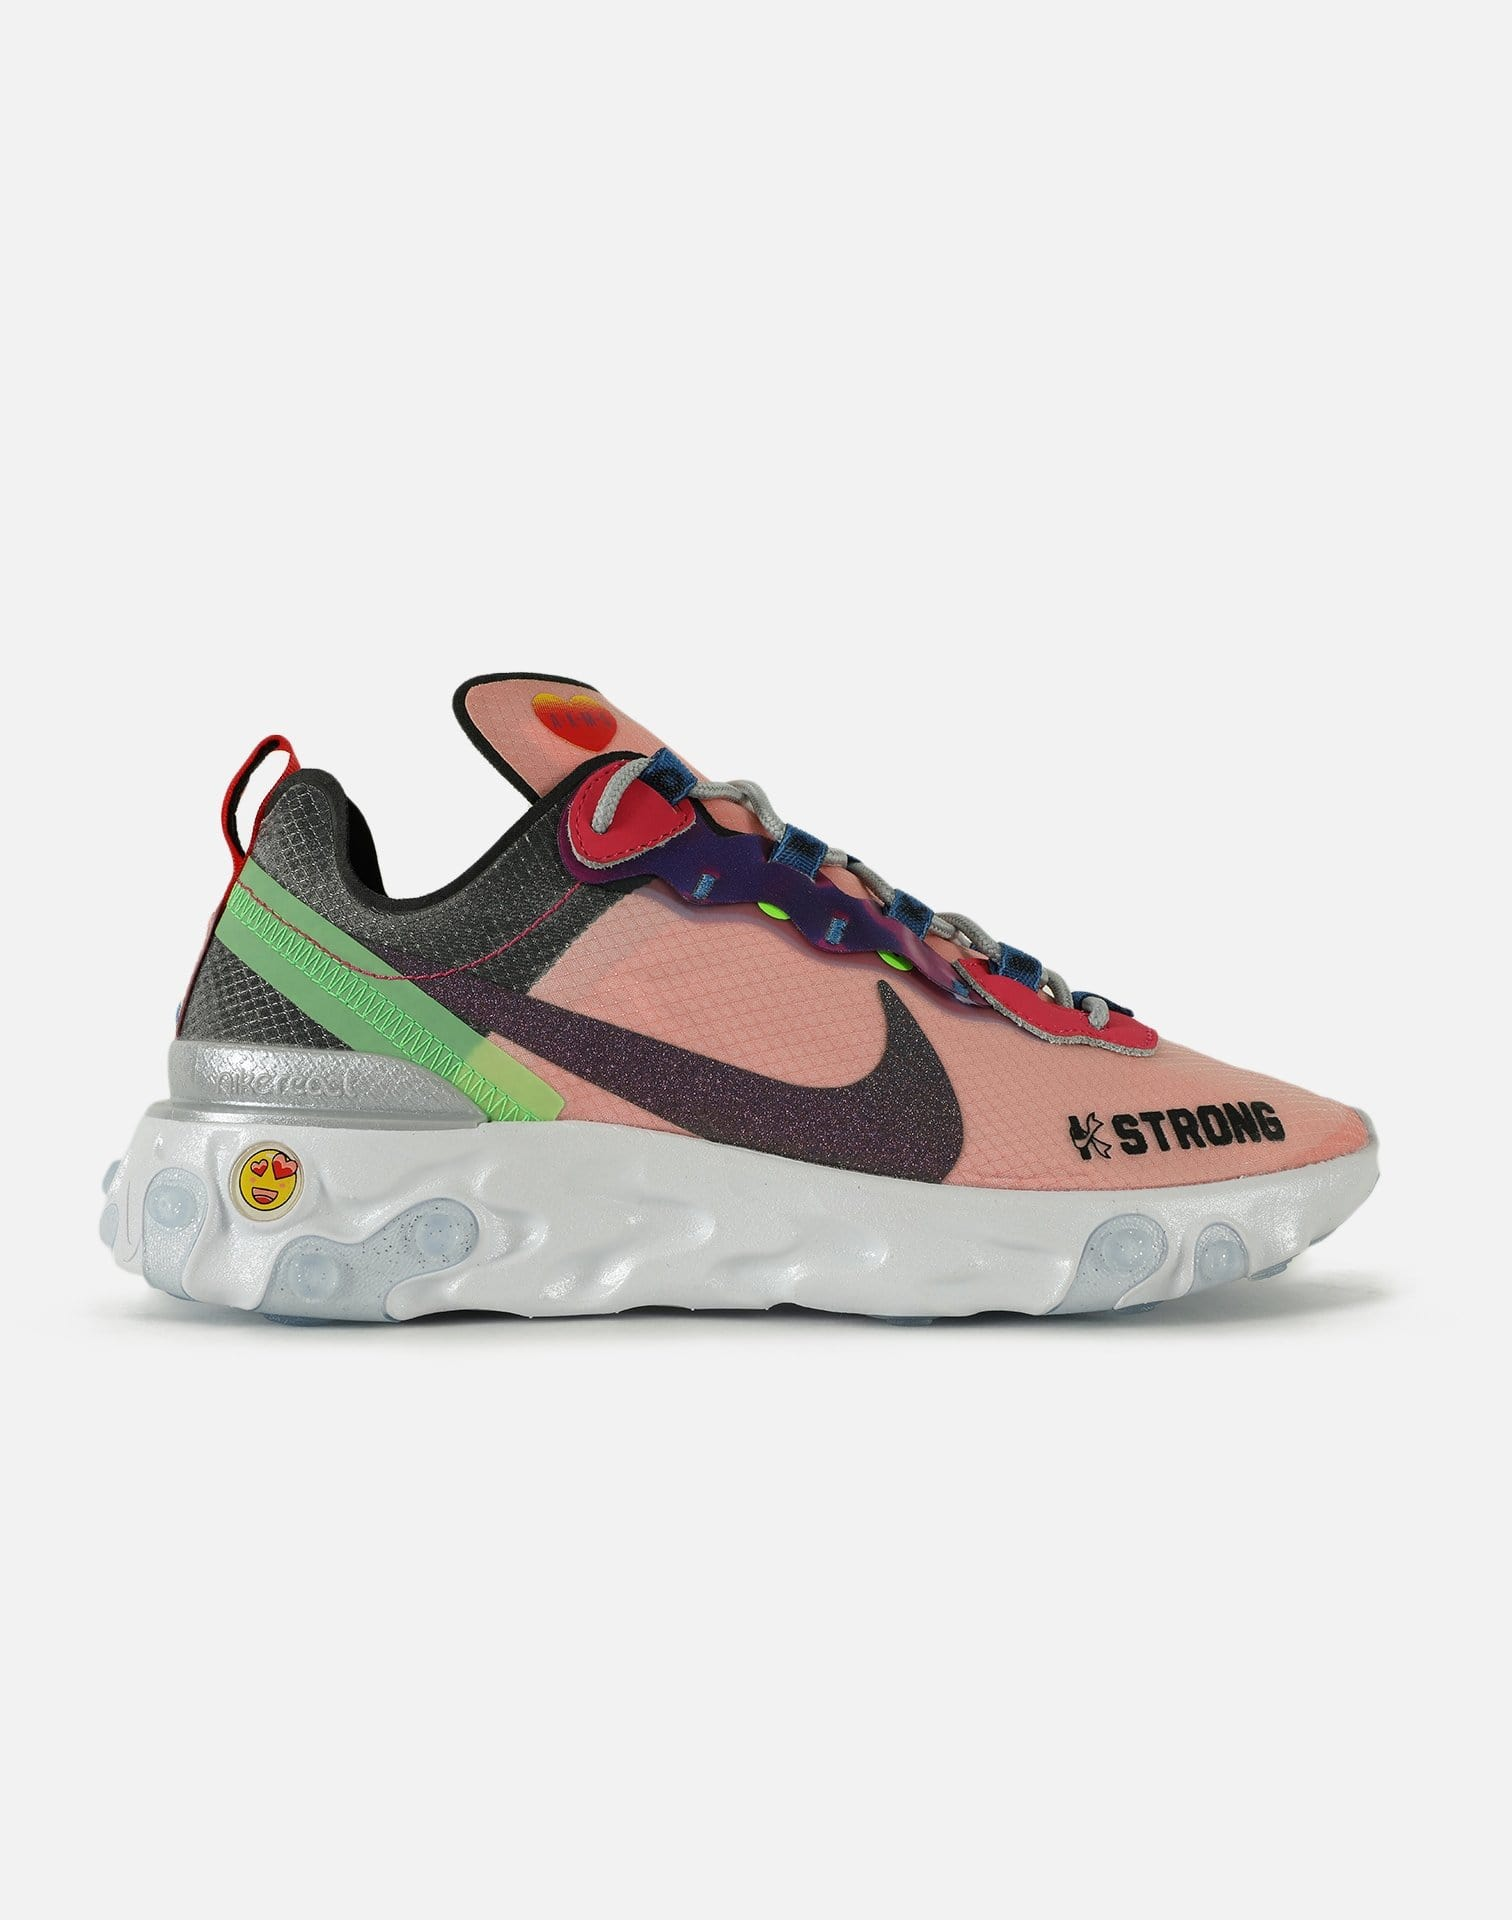 Nike REACT ELEMENT 55 DOERNBECHER 'KHALEAH'